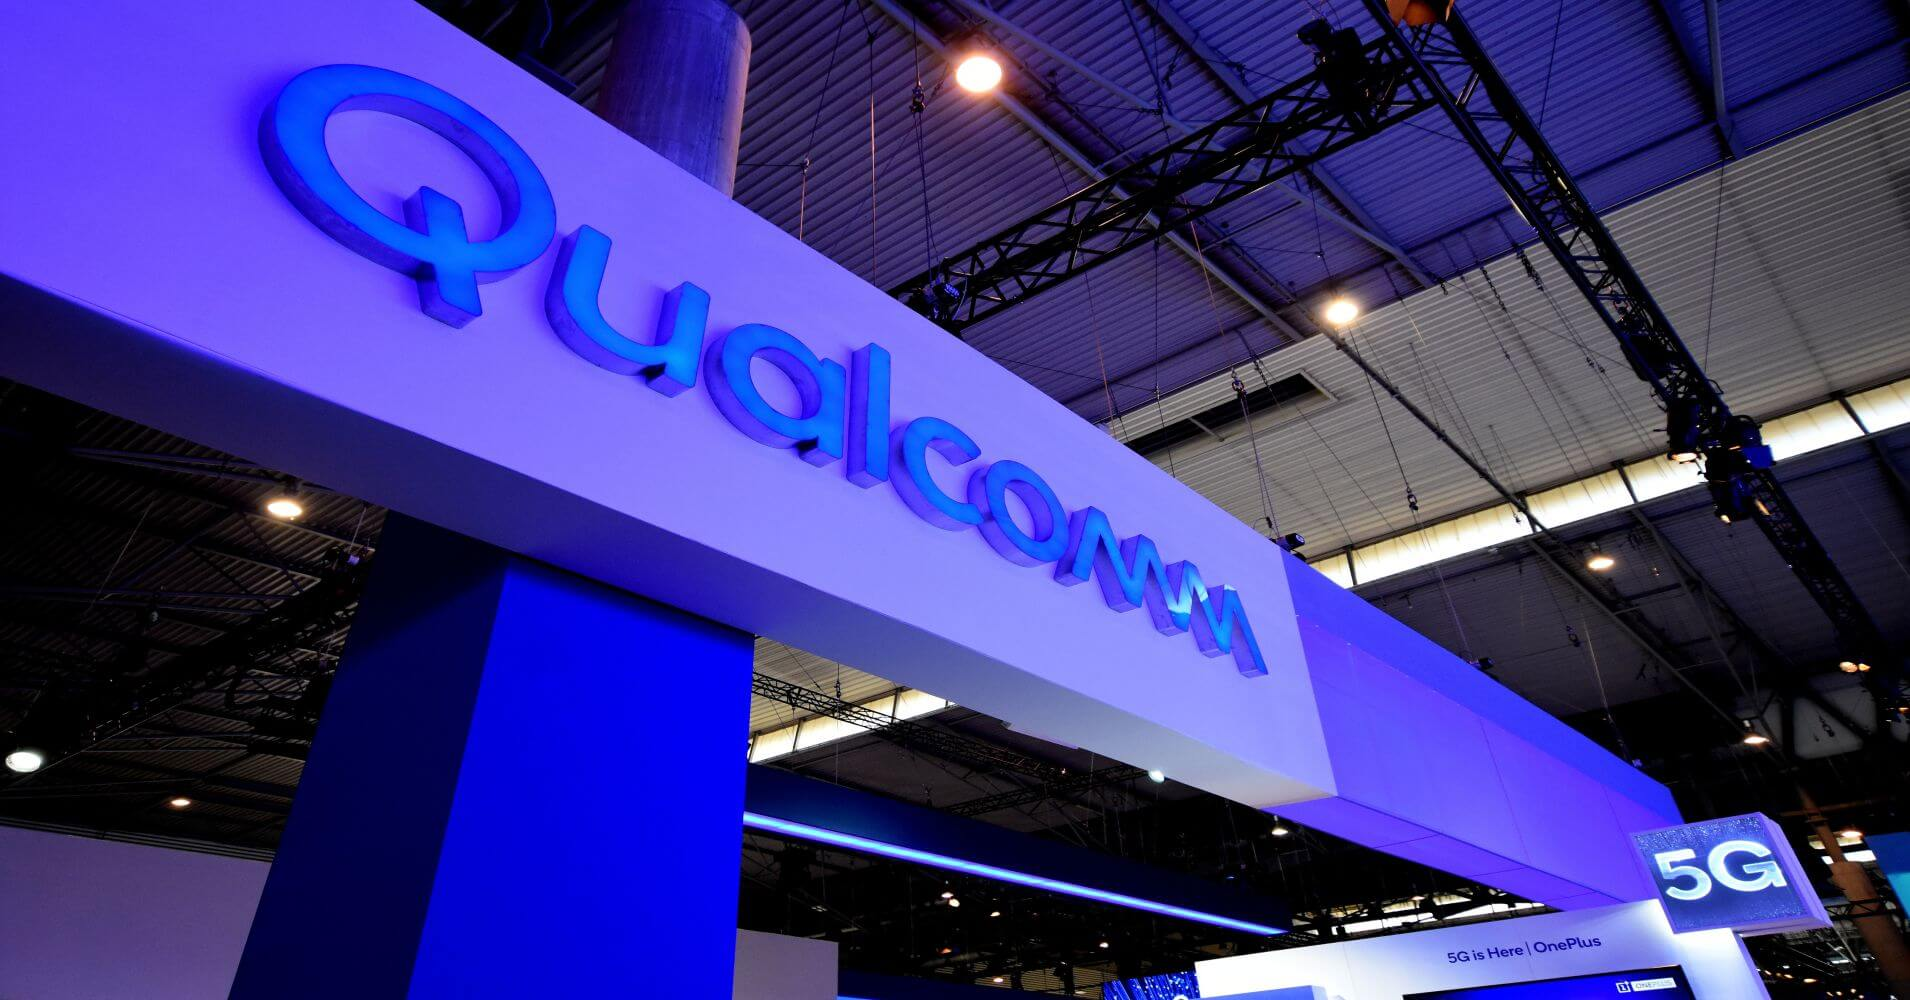 Qualcomm and Tencent join forces on mobile gaming hardware and software